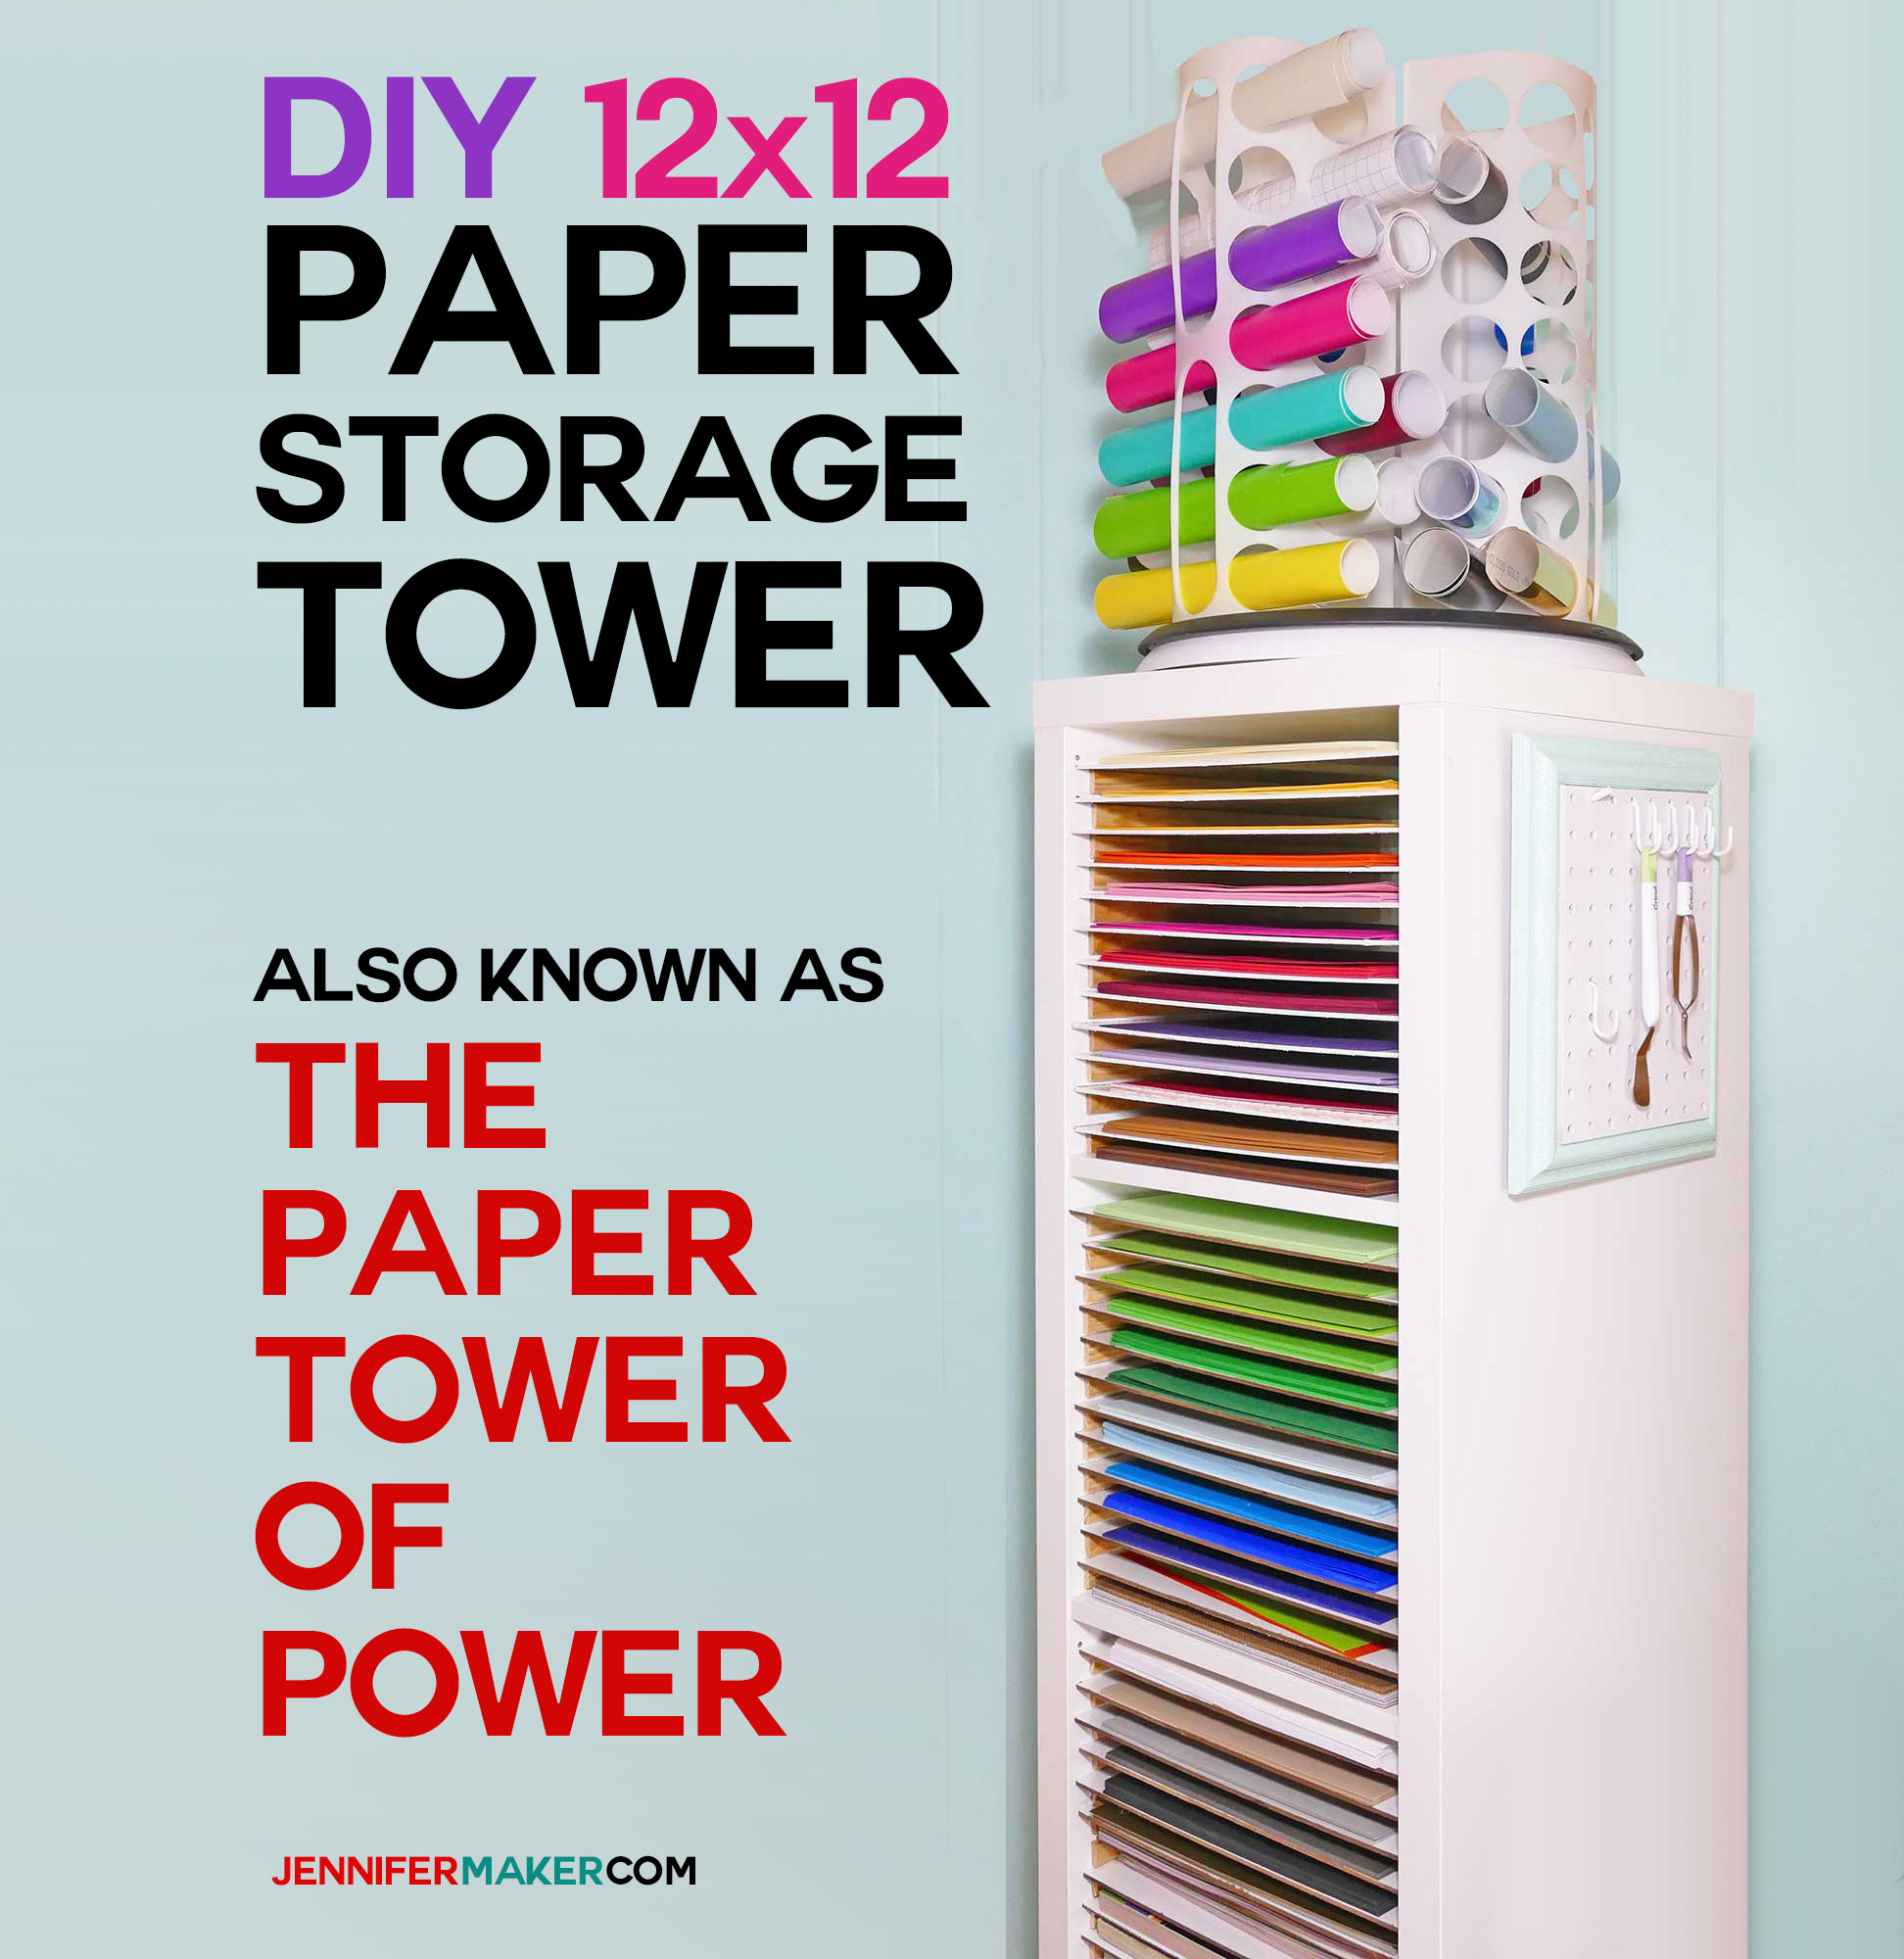 12x12 Paper Storage - DIY Vertical Organizer for Scrapbook Paper - Jennifer Maker